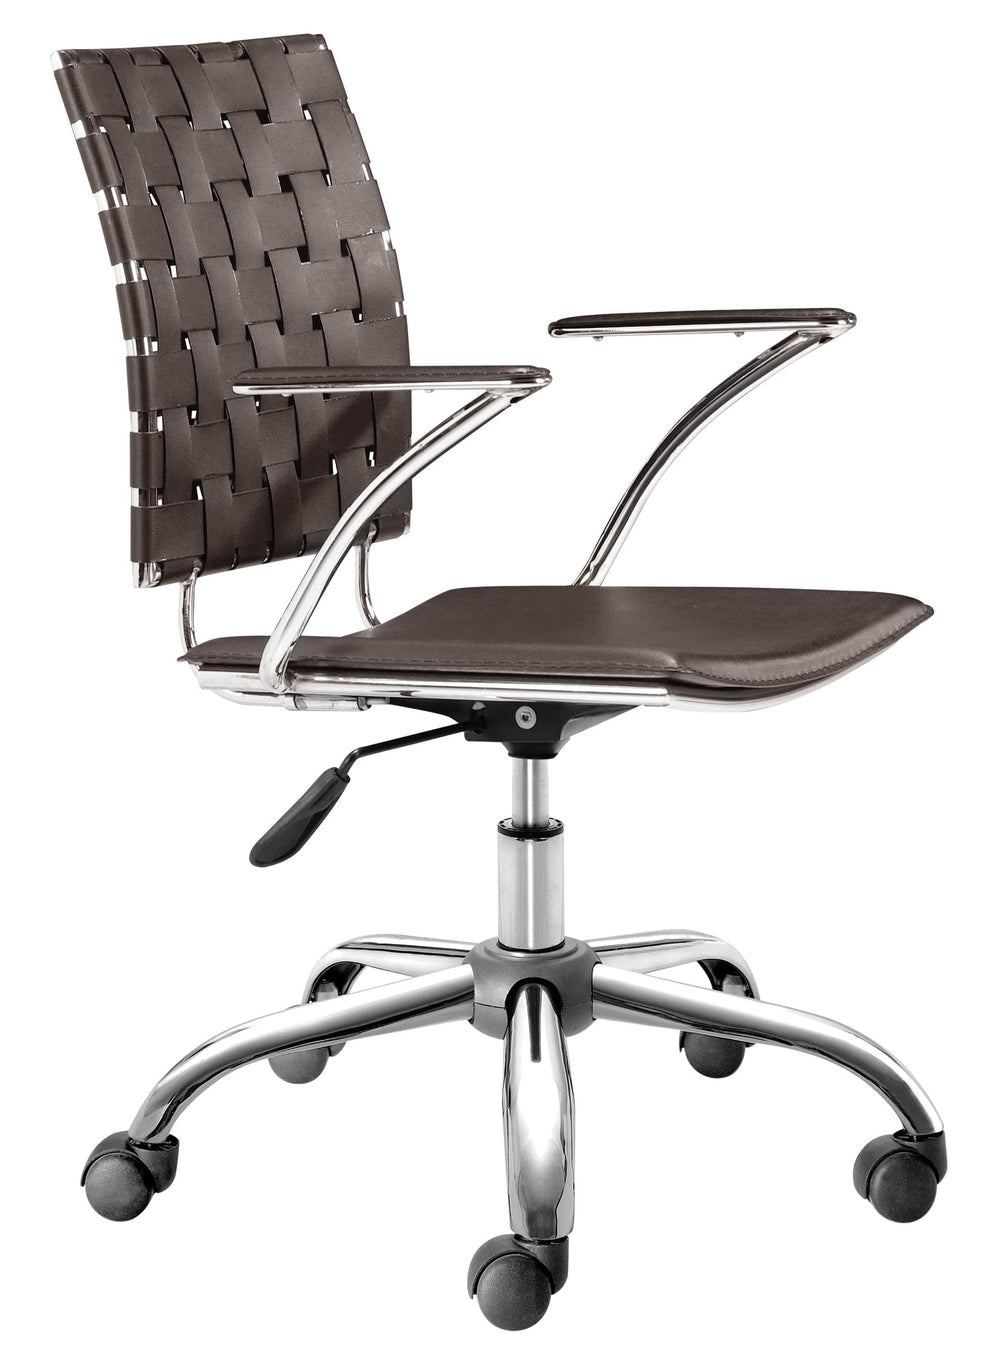 Criss Cross Office Chair Espresso - Furniture - Office - Chairs